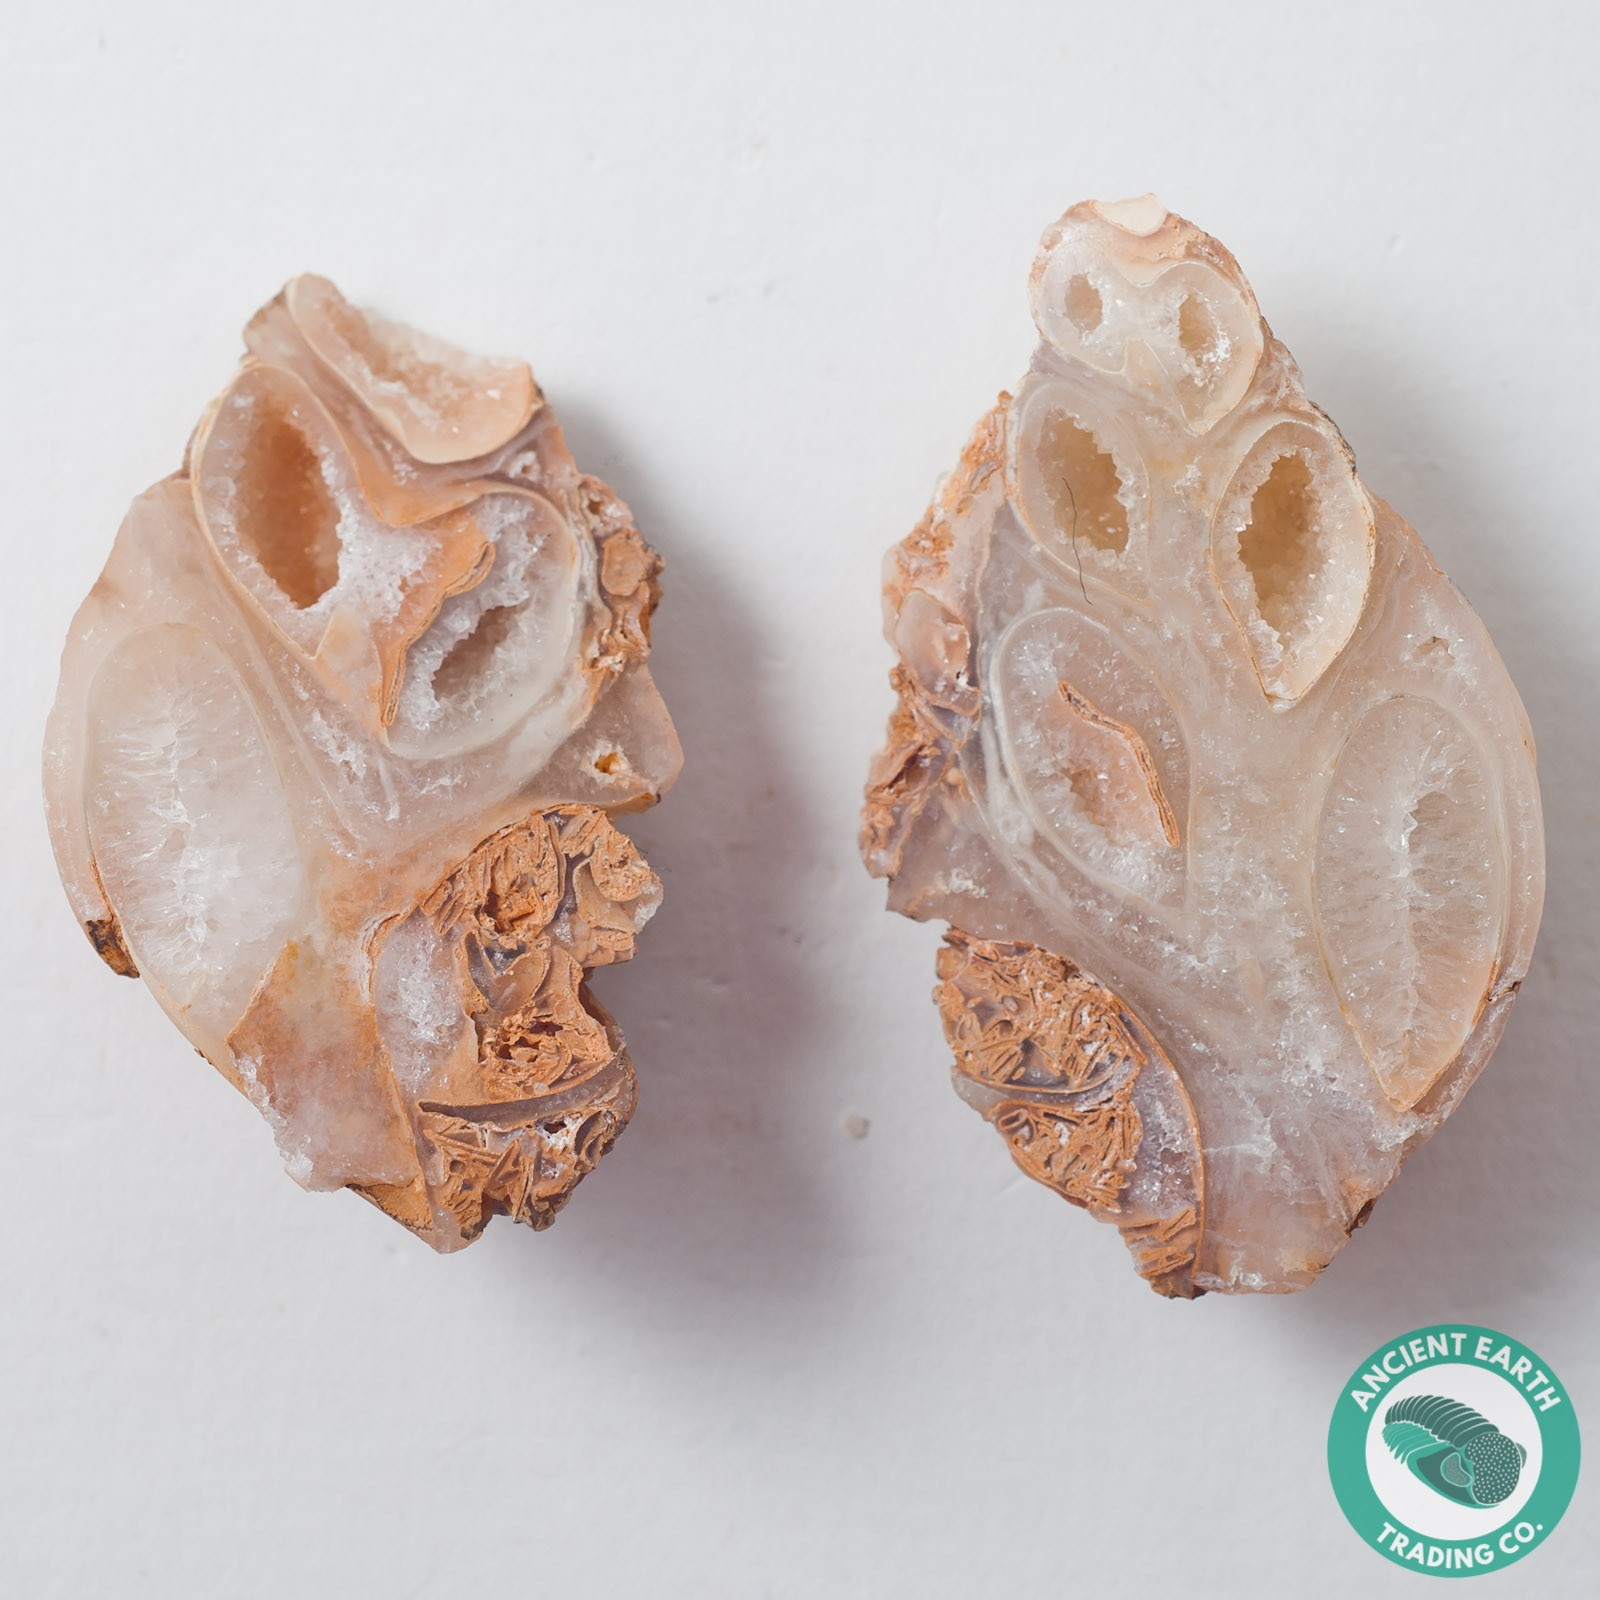 2.07 in Polished Agate Split Pair Gastropod from Western Sahara